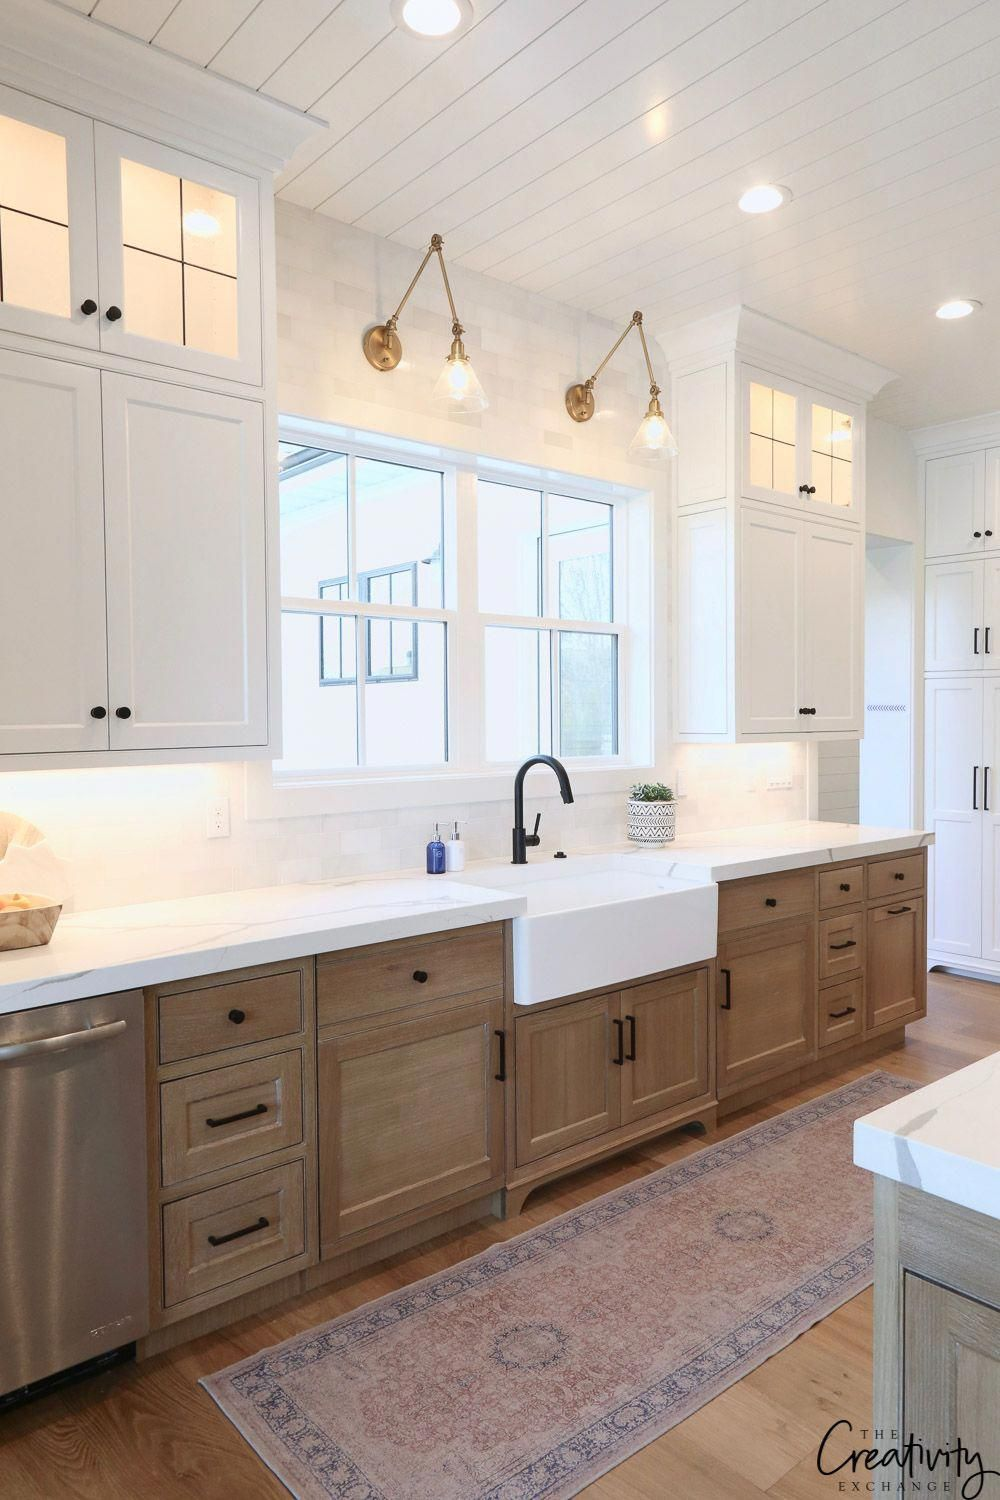 Love The Wood Lower Cabinets With White Upper Cabinets Shiplap Ceiling And Lighting Farmhouse Affordable Farmhouse Kitchen Home Kitchens Home Decor Kitchen